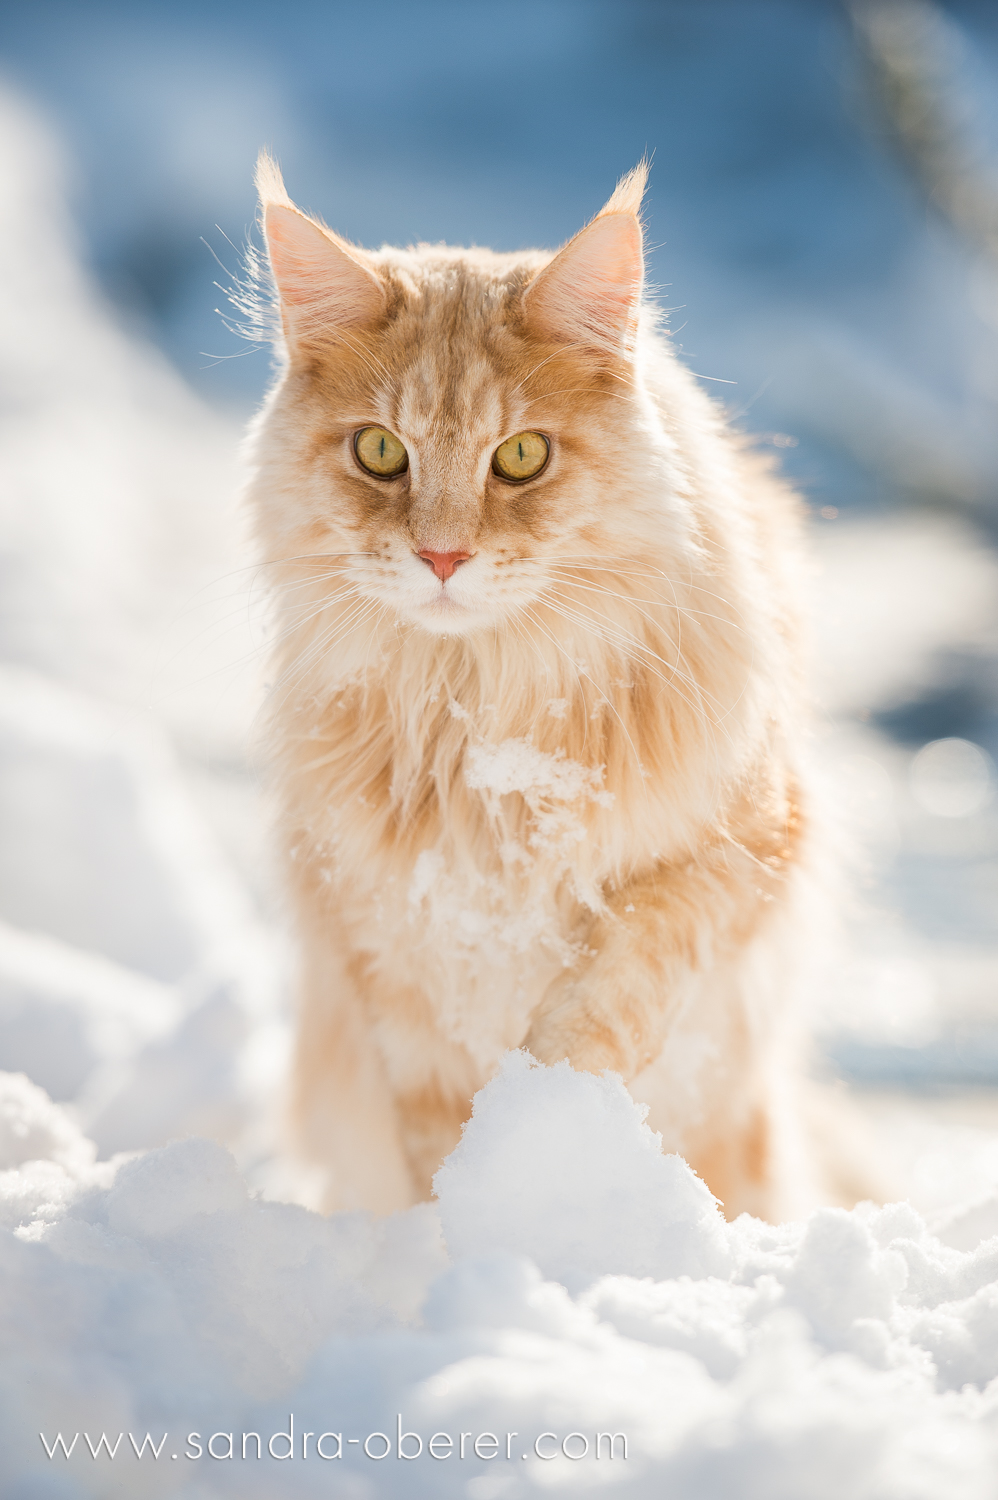 Maine Coon Red Silver, Lion King, Cat in Snow, Katze Schnee, Katze Winter